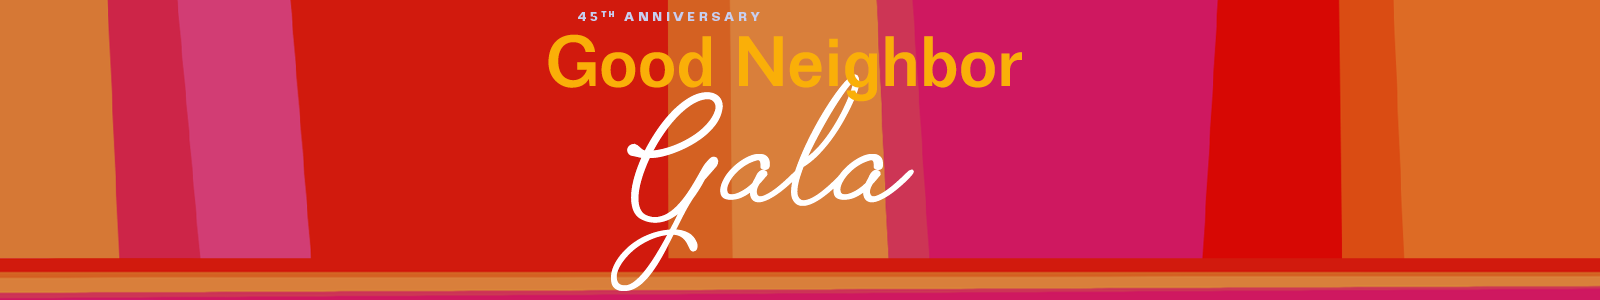 Good Neighbor Gala